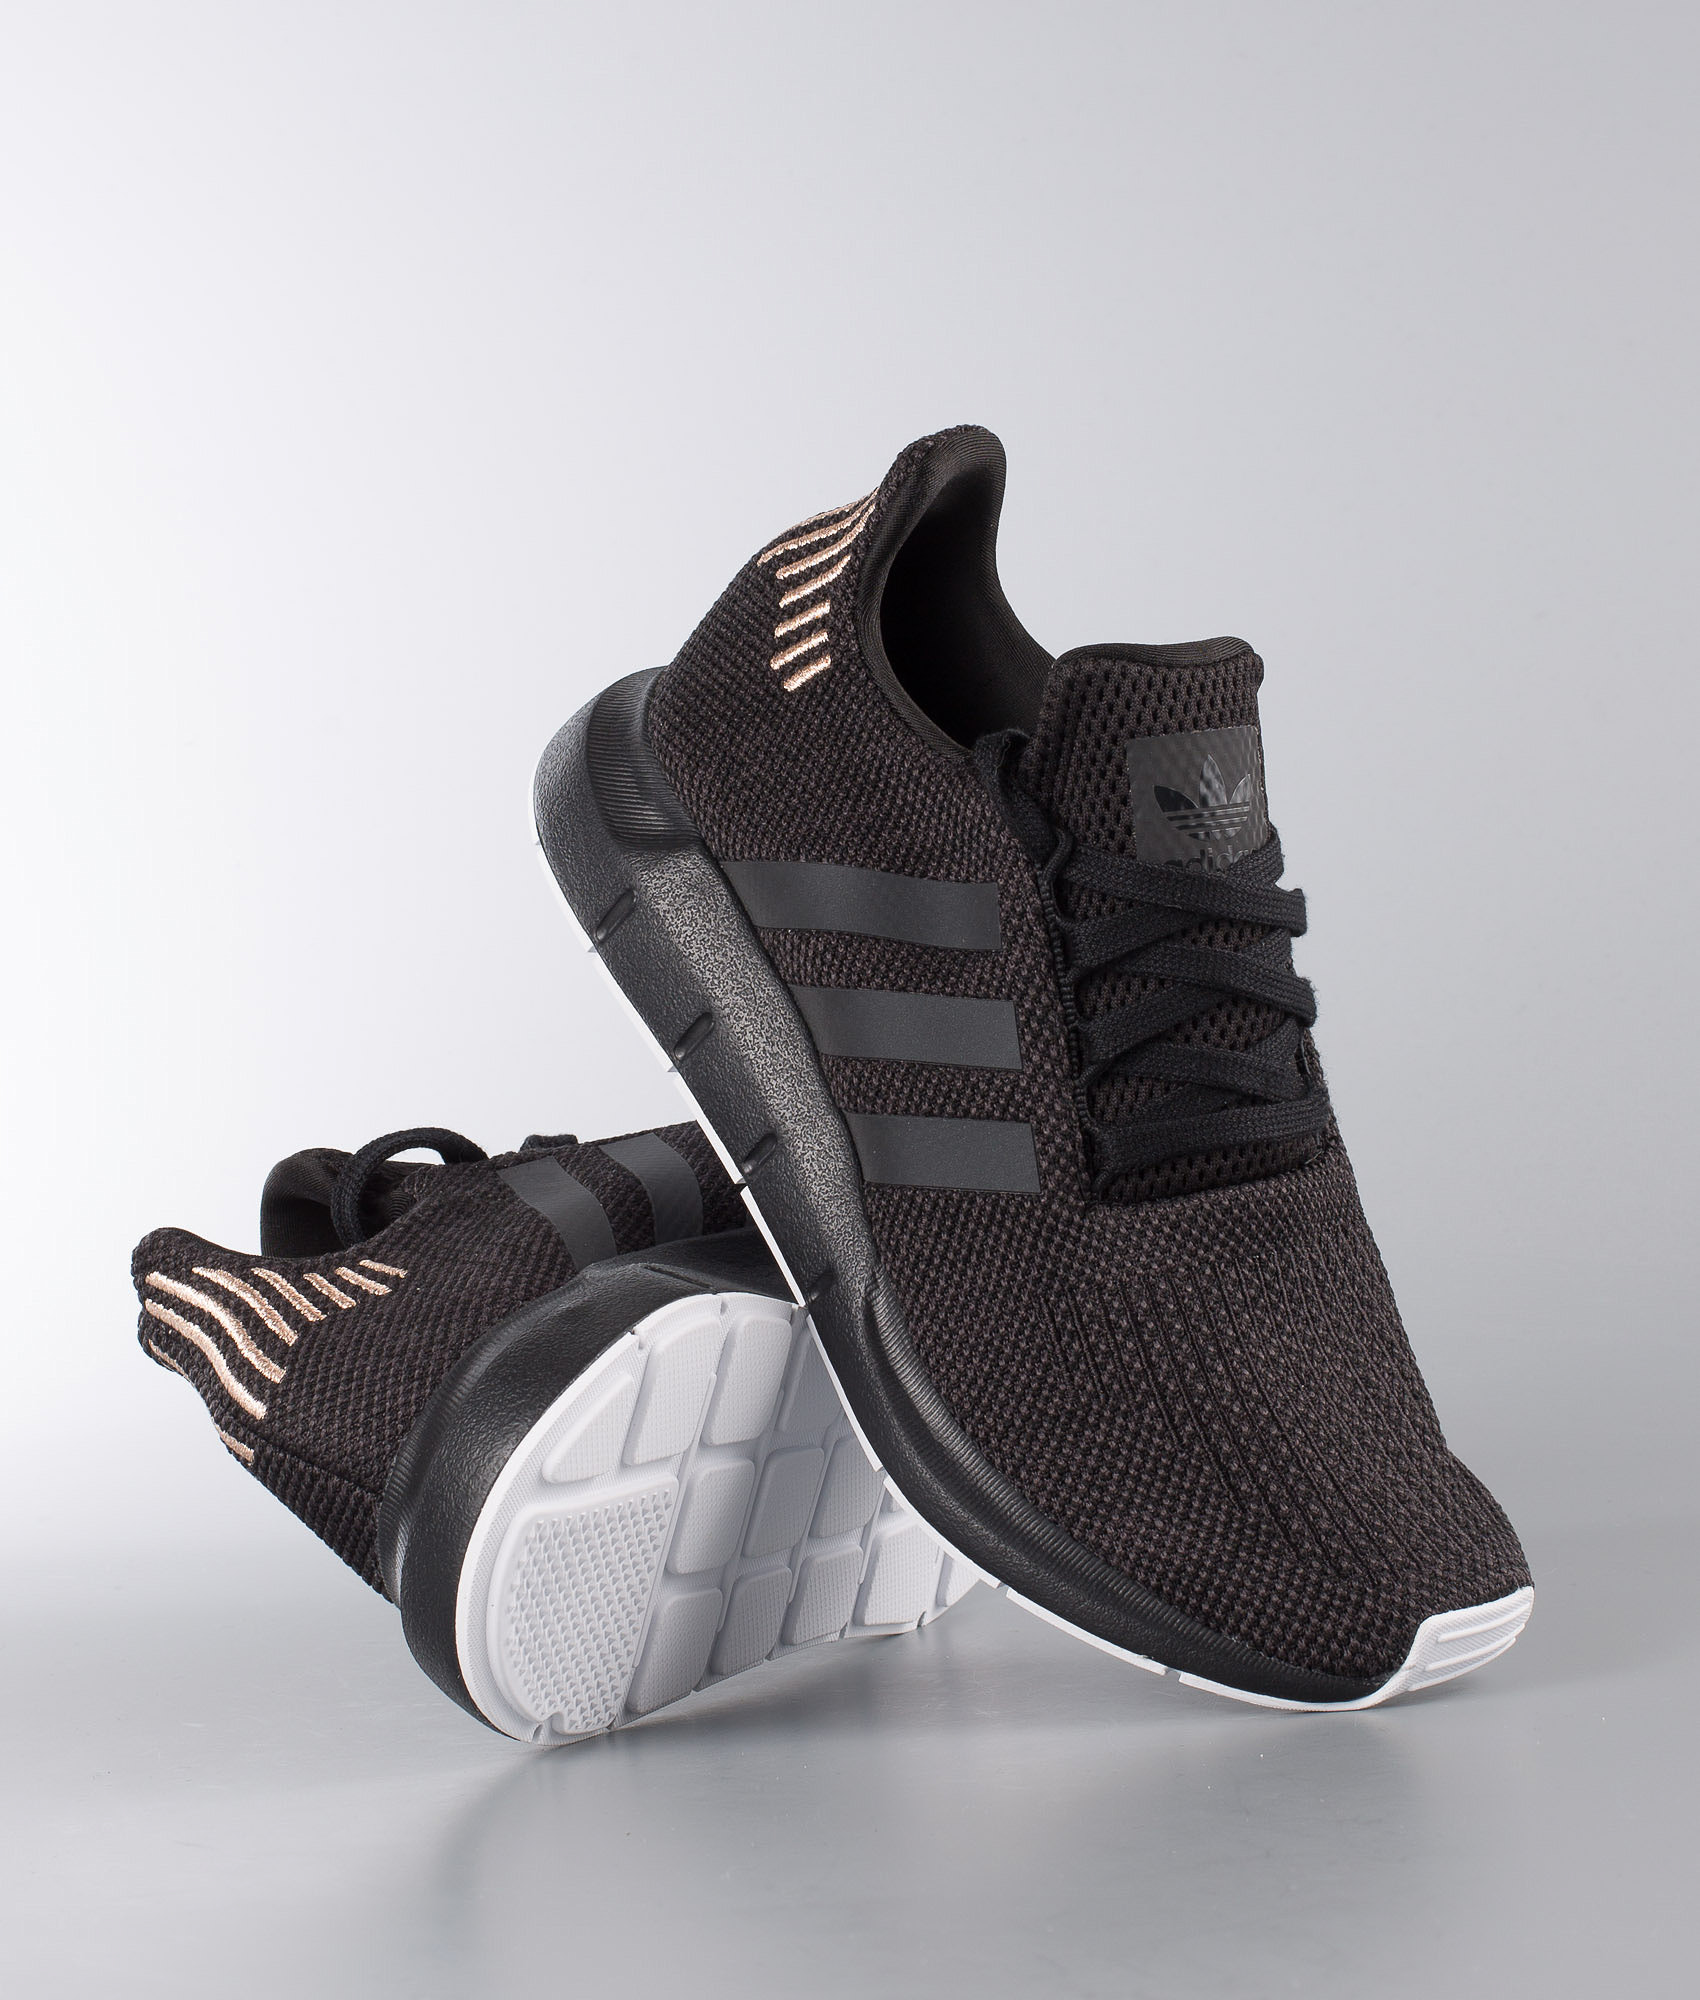 dedc99607d75ef Adidas Originals Swift Run W Shoes Black. Core Black Carbon Ftwr White